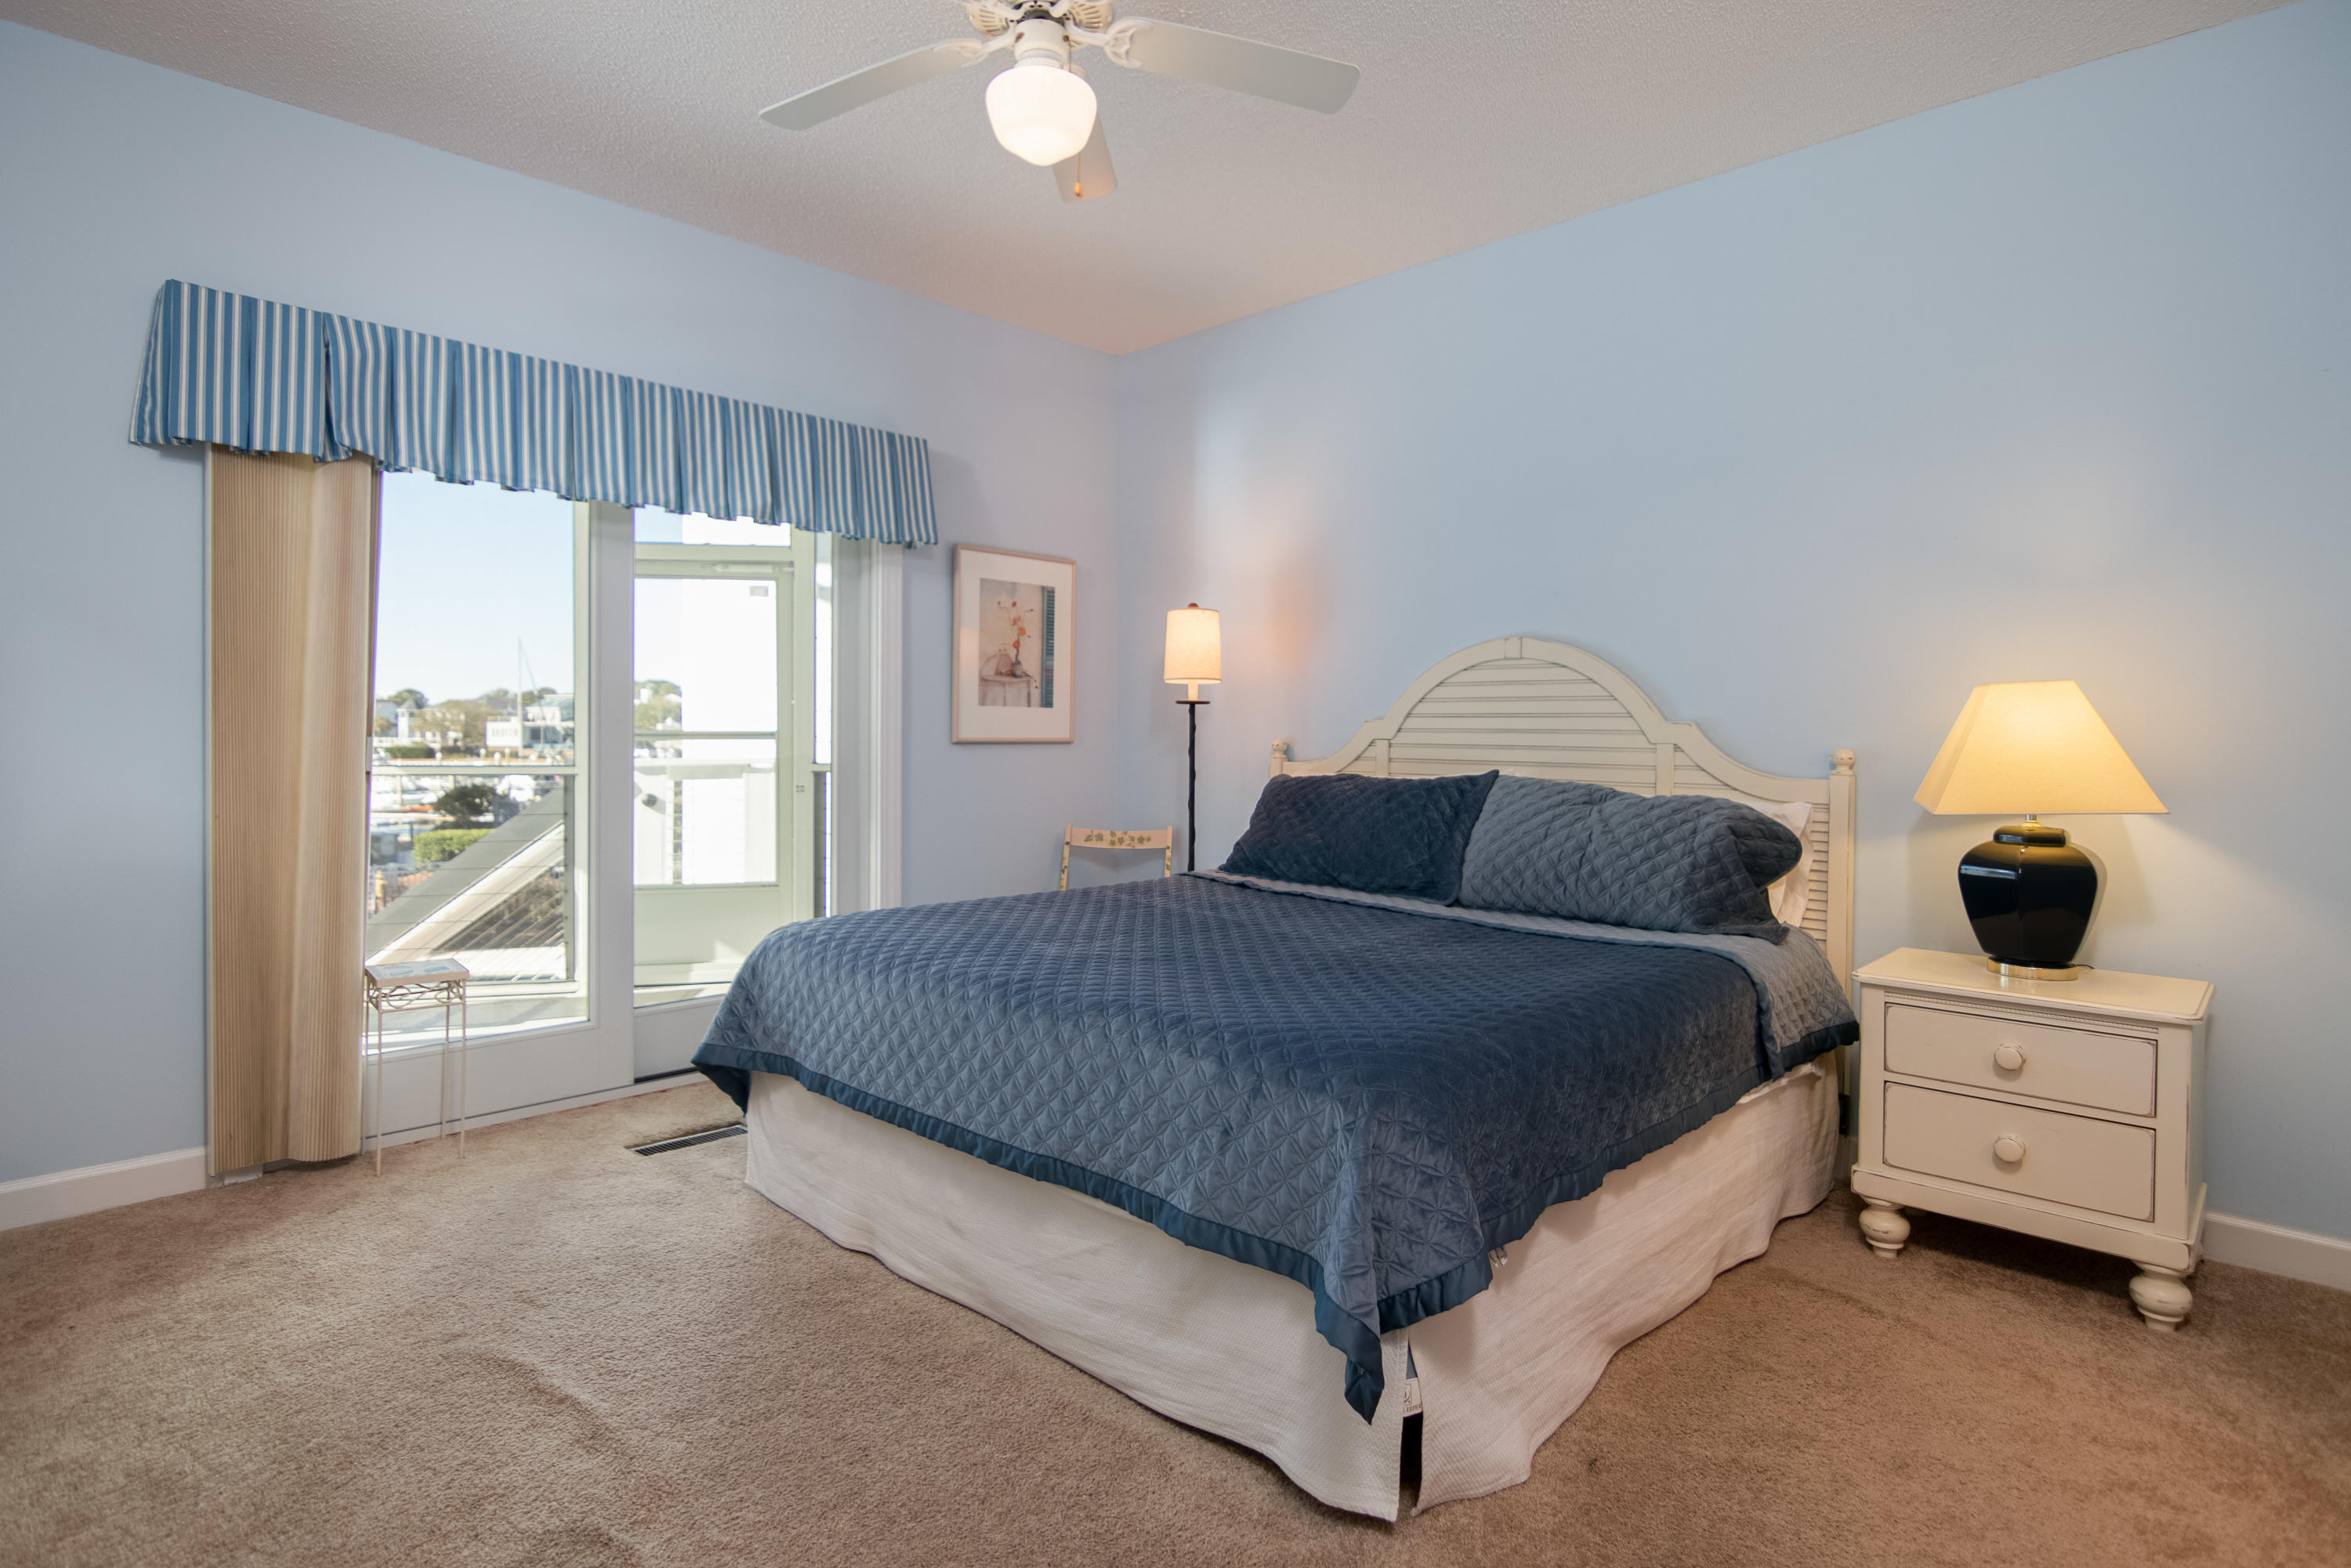 Wild Dunes Yacht Harbor Homes For Sale - 505 Yacht Harbor, Isle of Palms, SC - 4